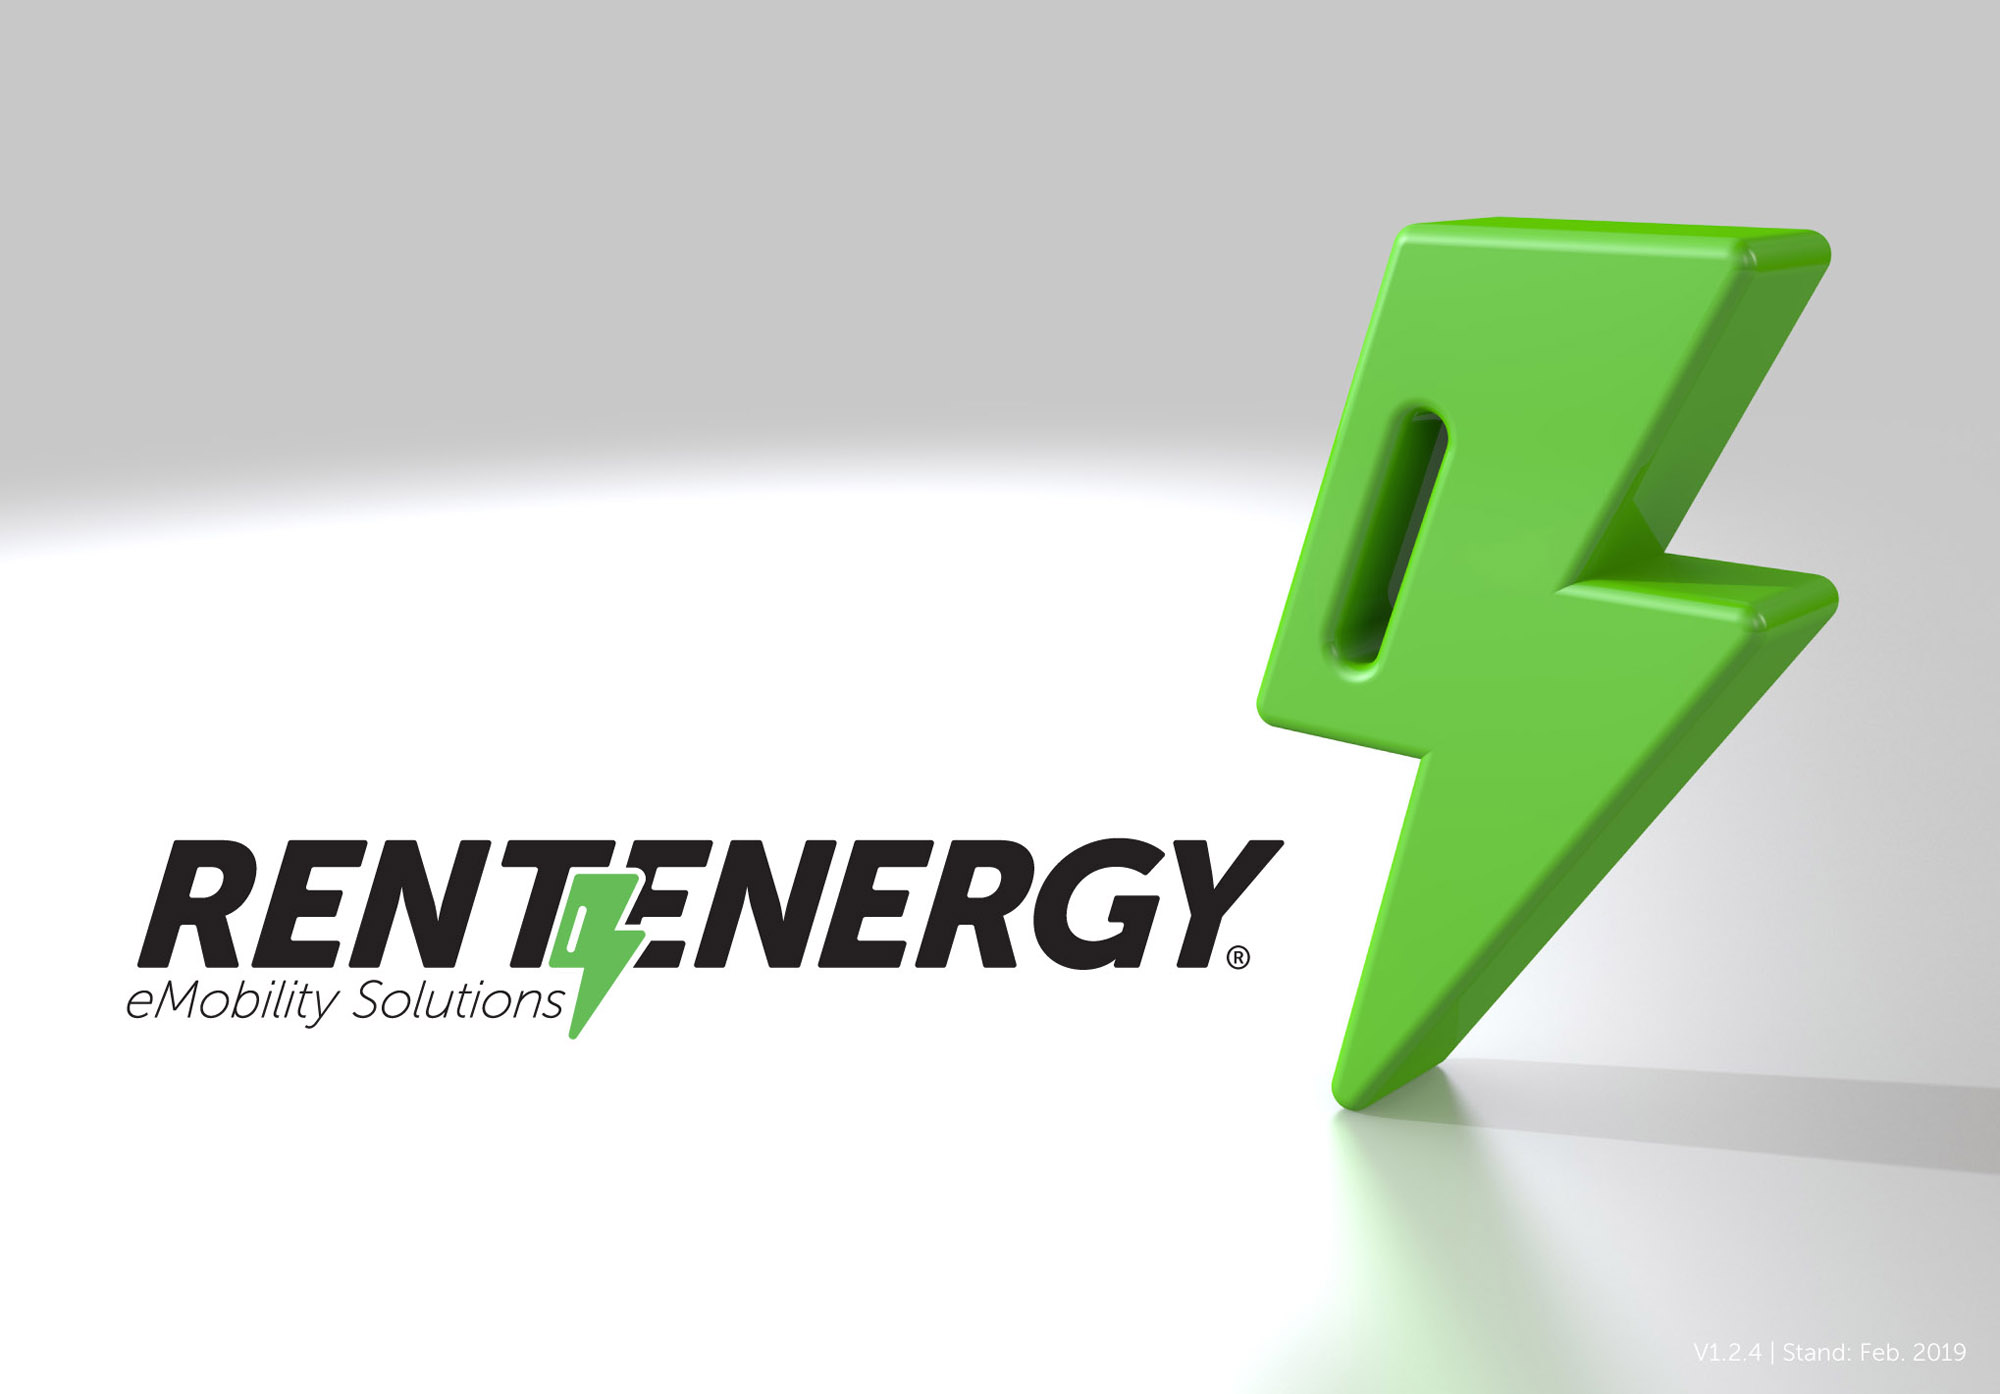 RentEnergy – eMobility Solutions